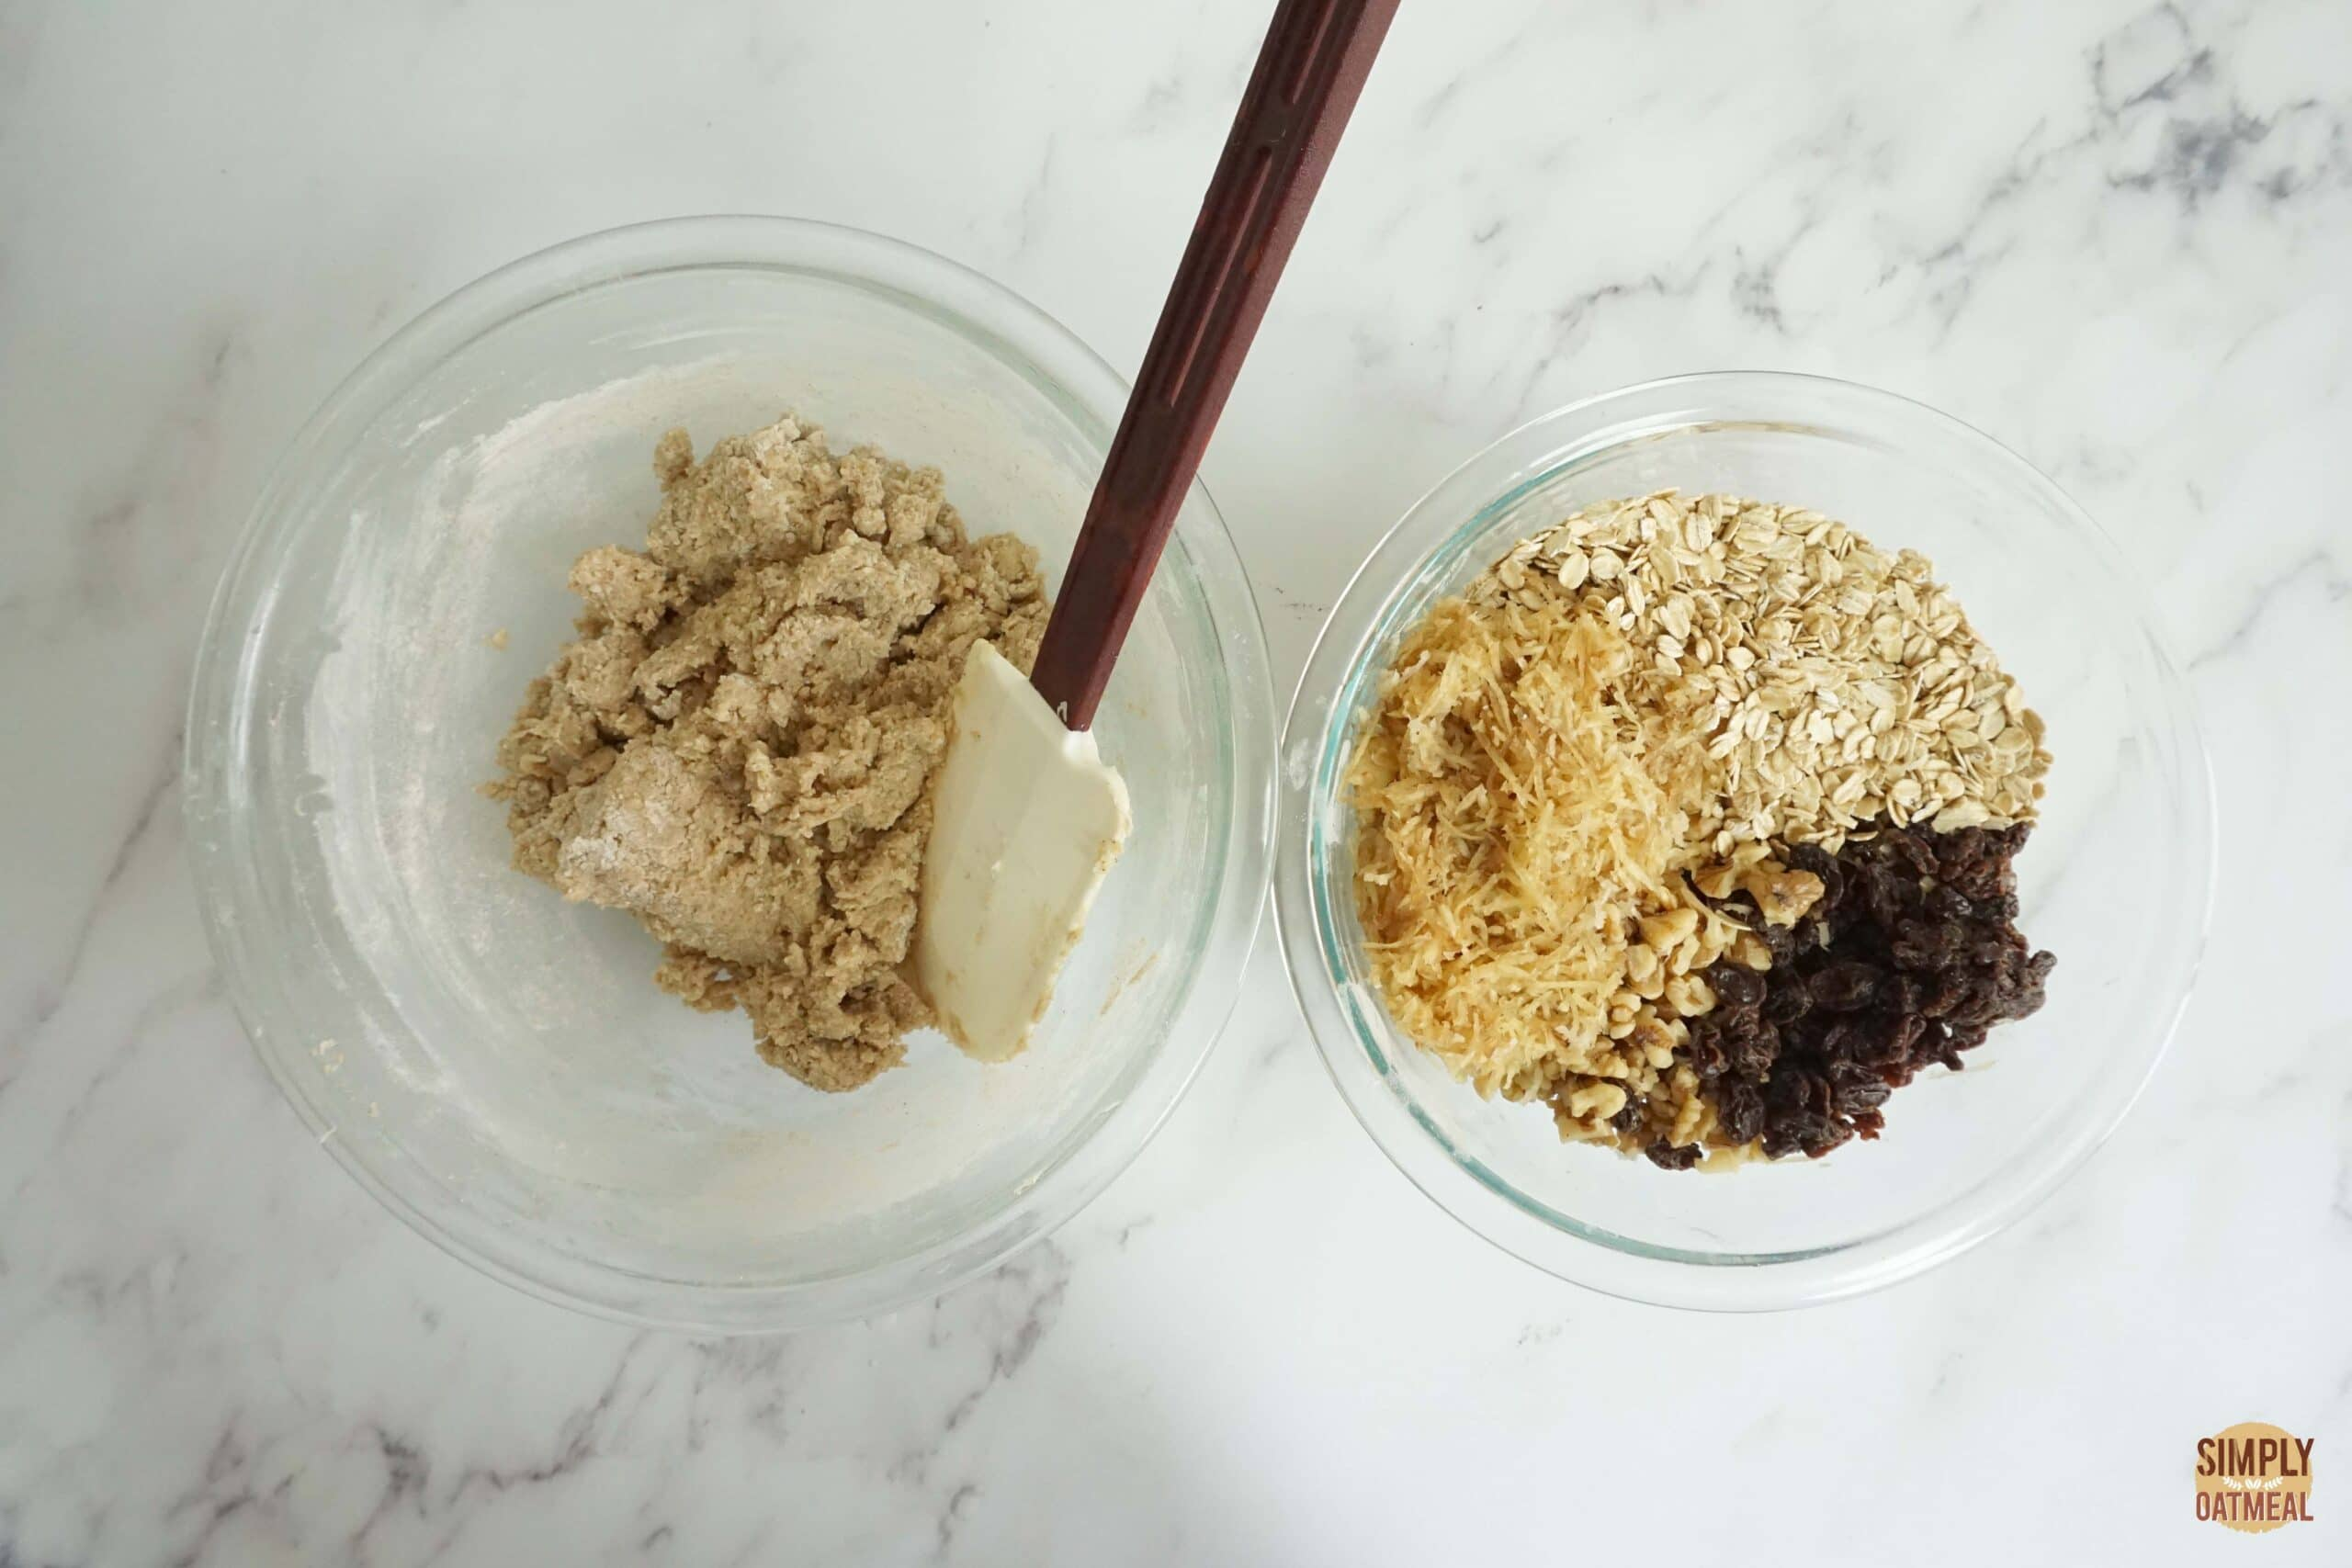 Fold grated carrot and raisins into oatmeal cookie dough.